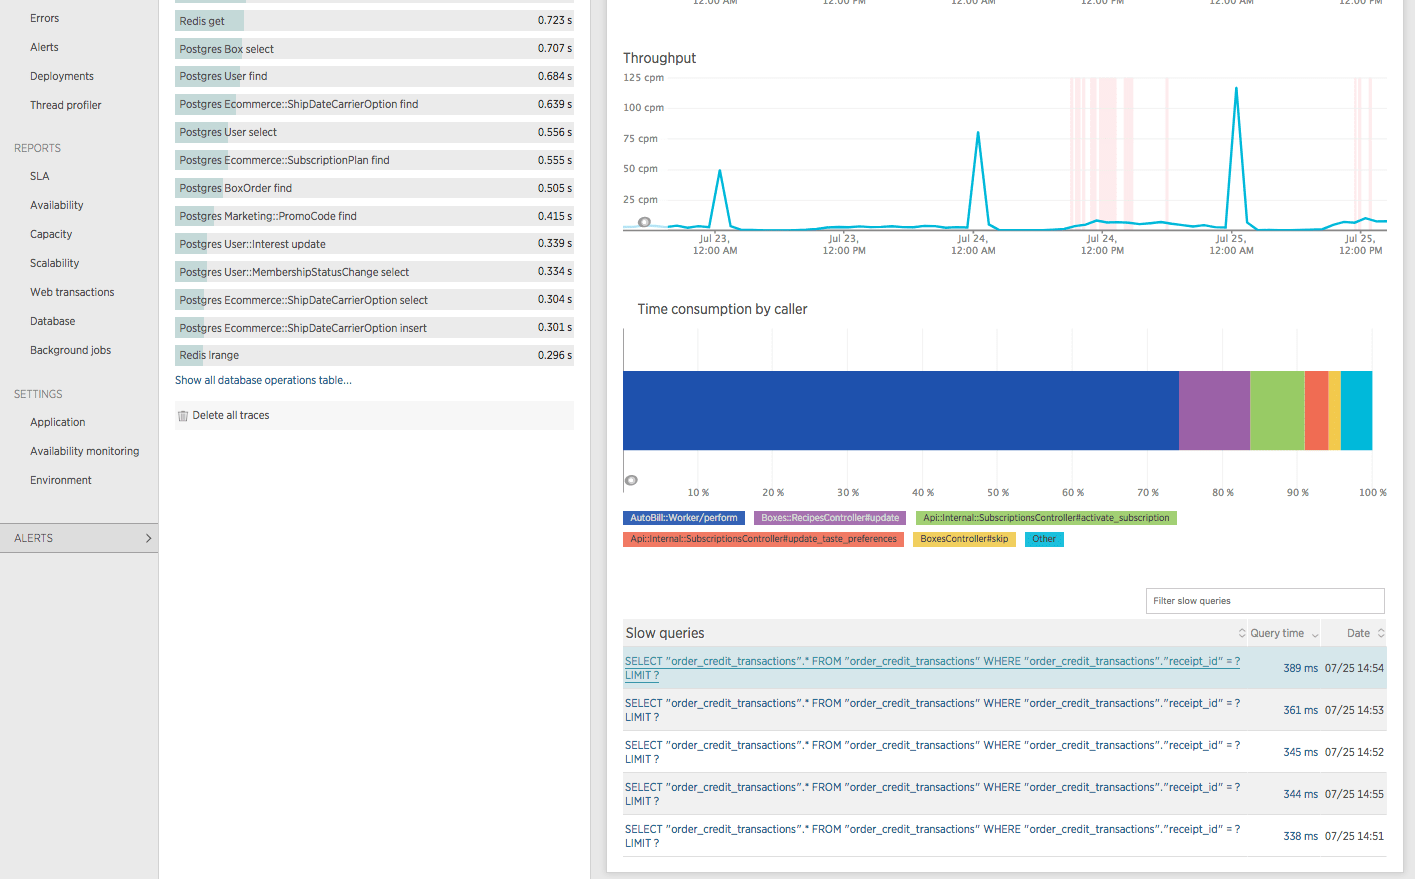 Screenshot from New Relic showing time consumption by caller and slow query traces for the Postgres `OrderCreditTransaction find` operation.